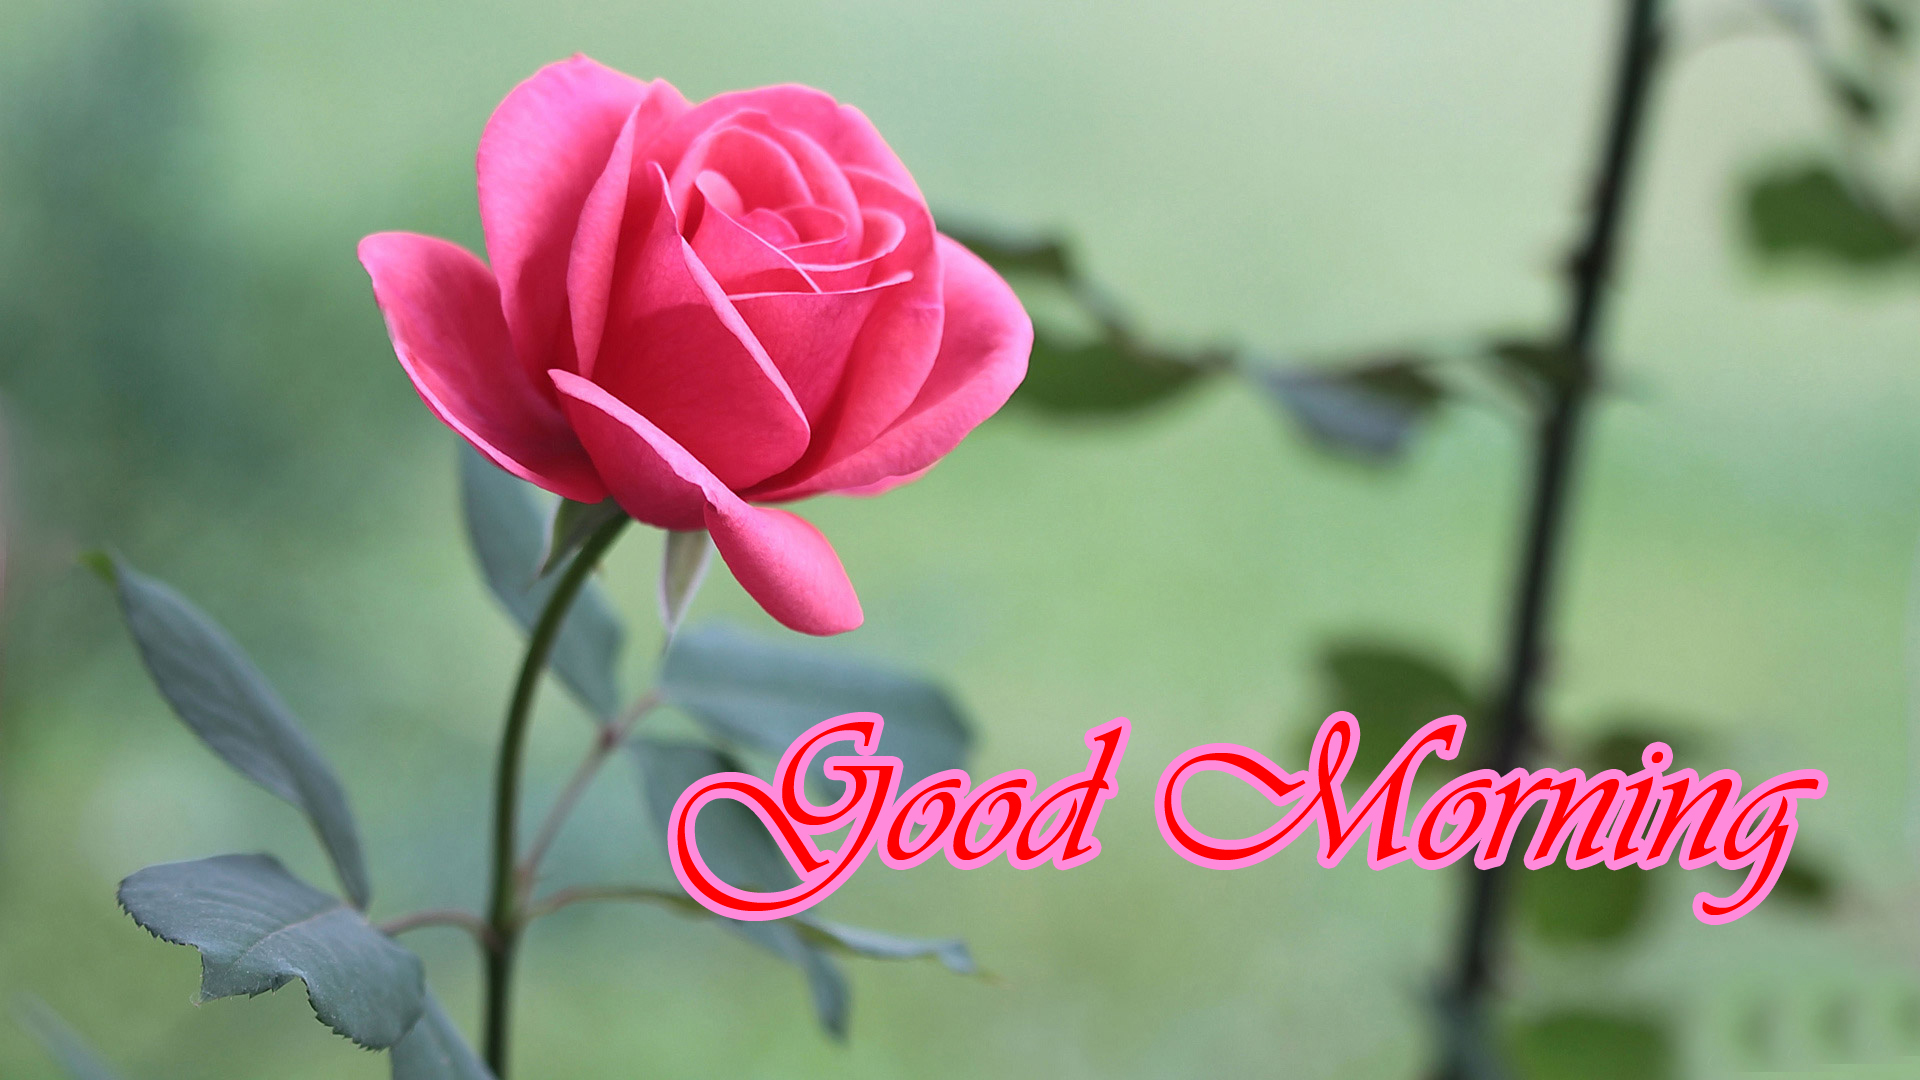 Romantic Good Morning Images with Picture of Rose Flower ...